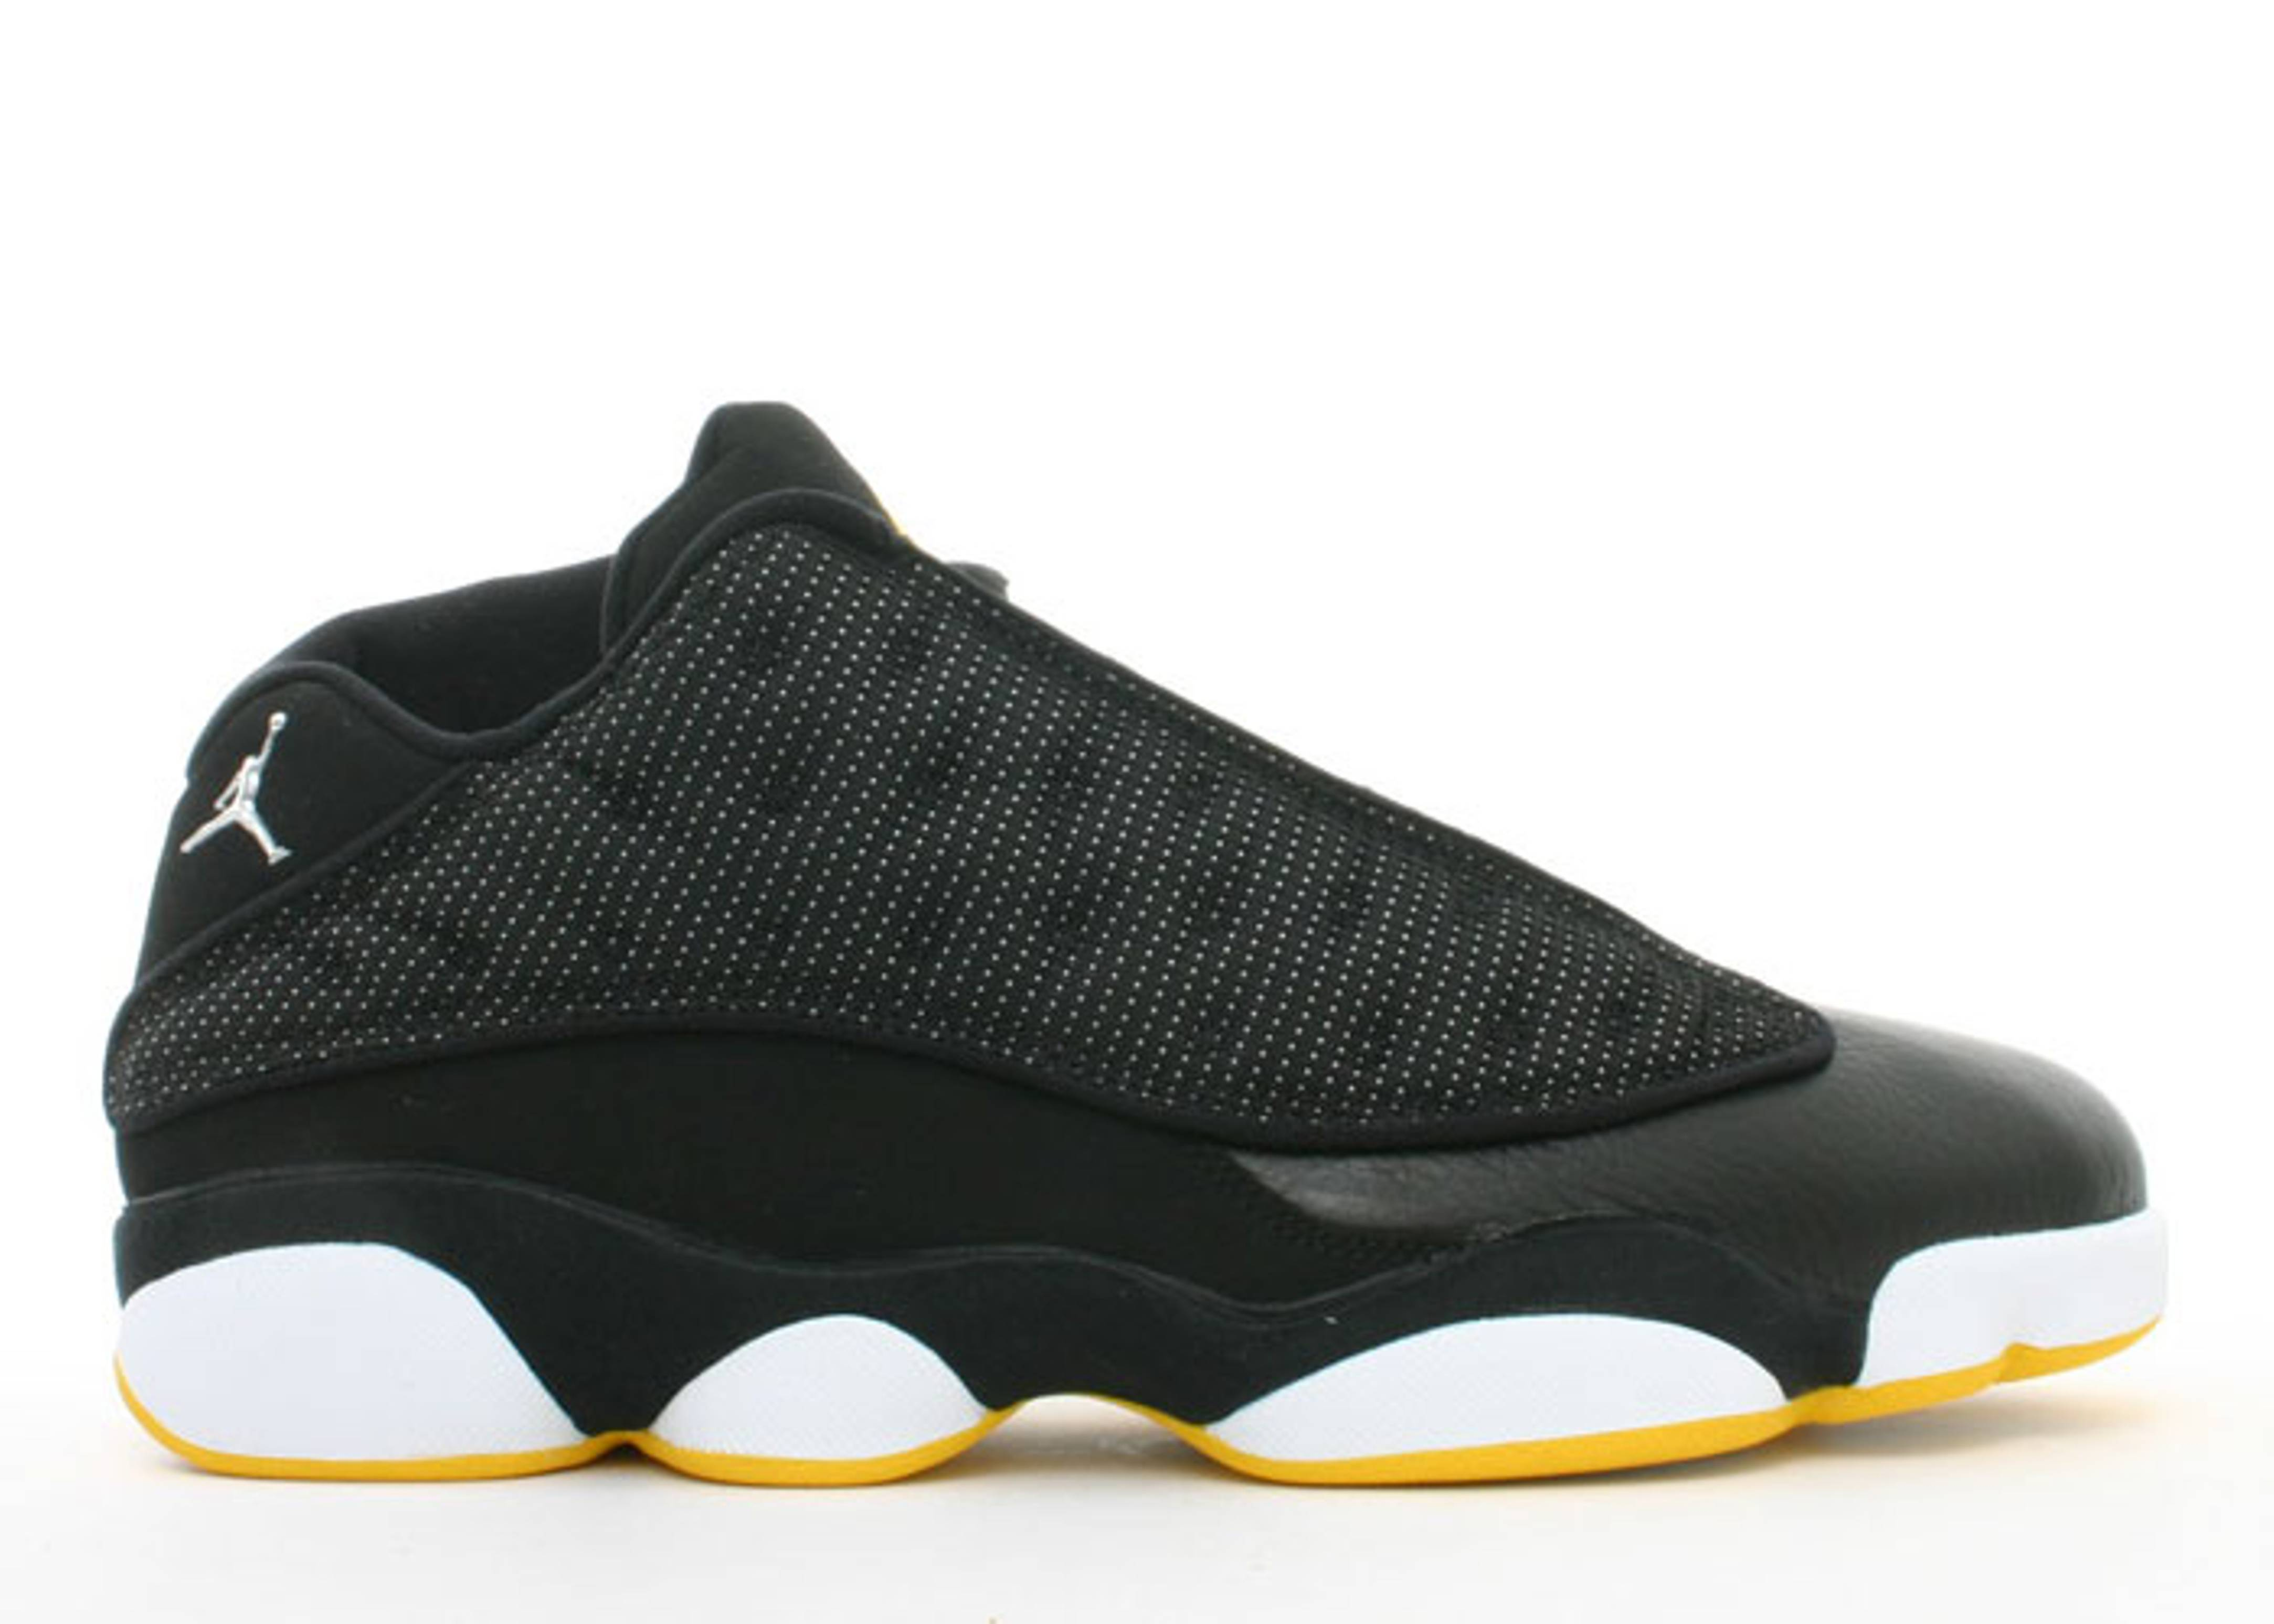 air jordan 13 retro low black silver white varsity maize